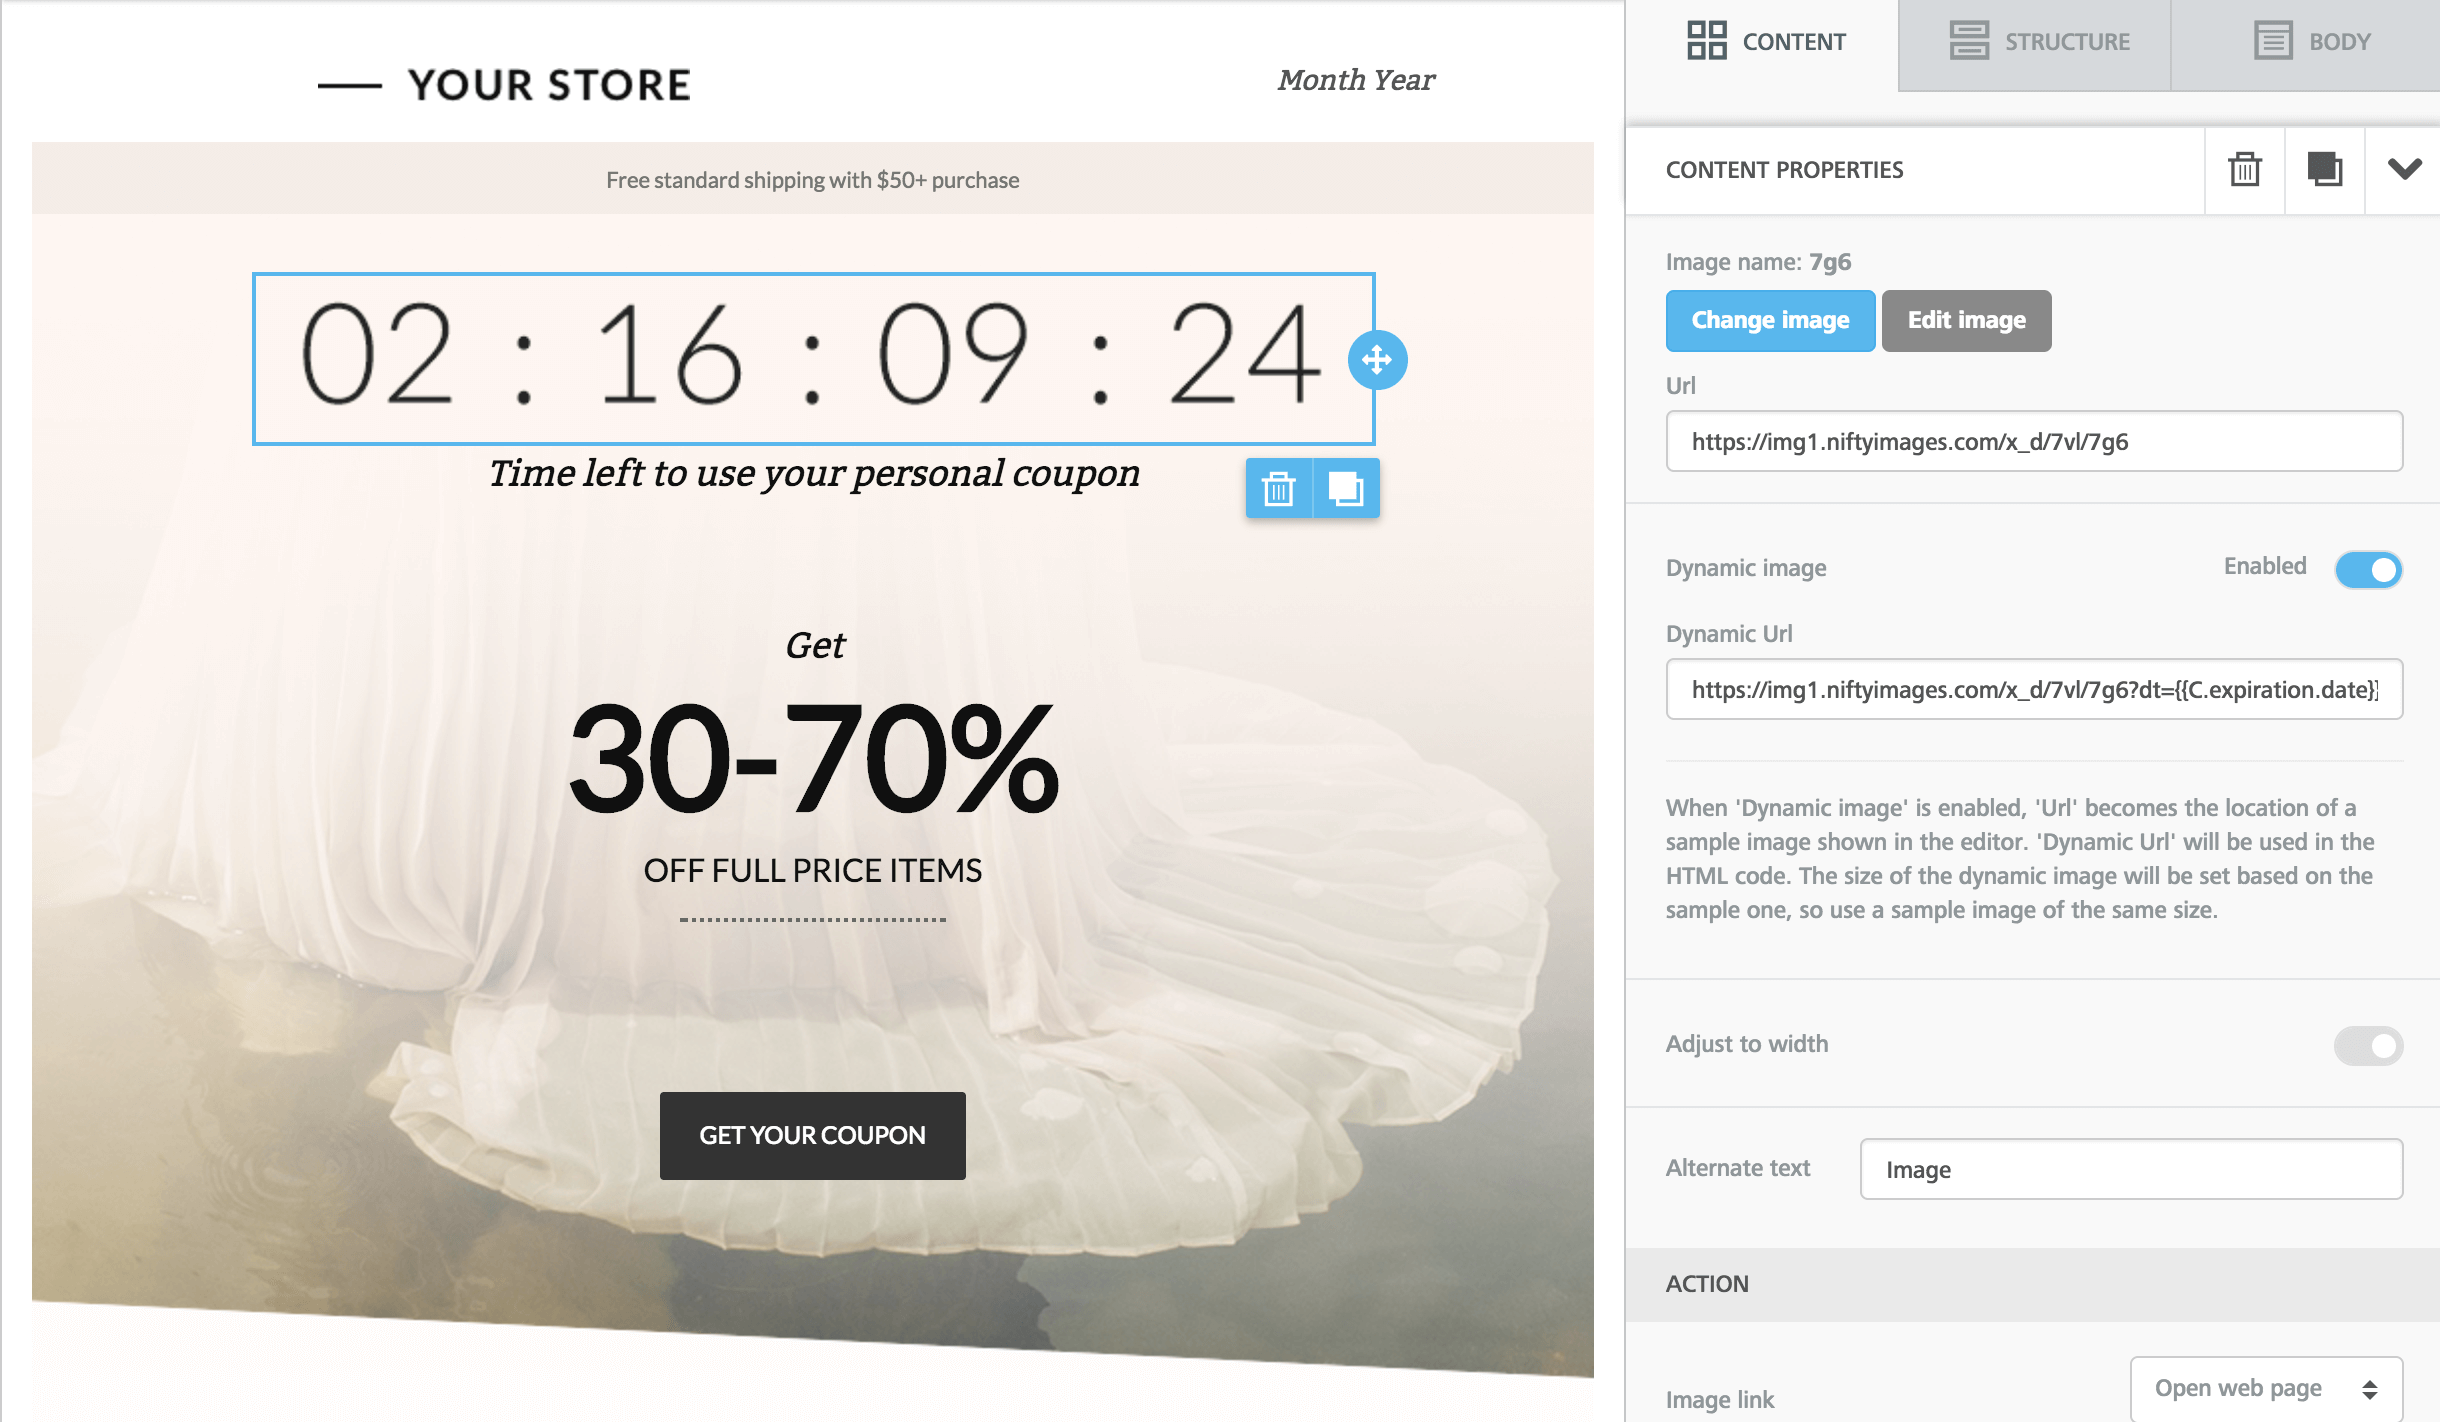 Using dynamic images for countdown timers and personalized content